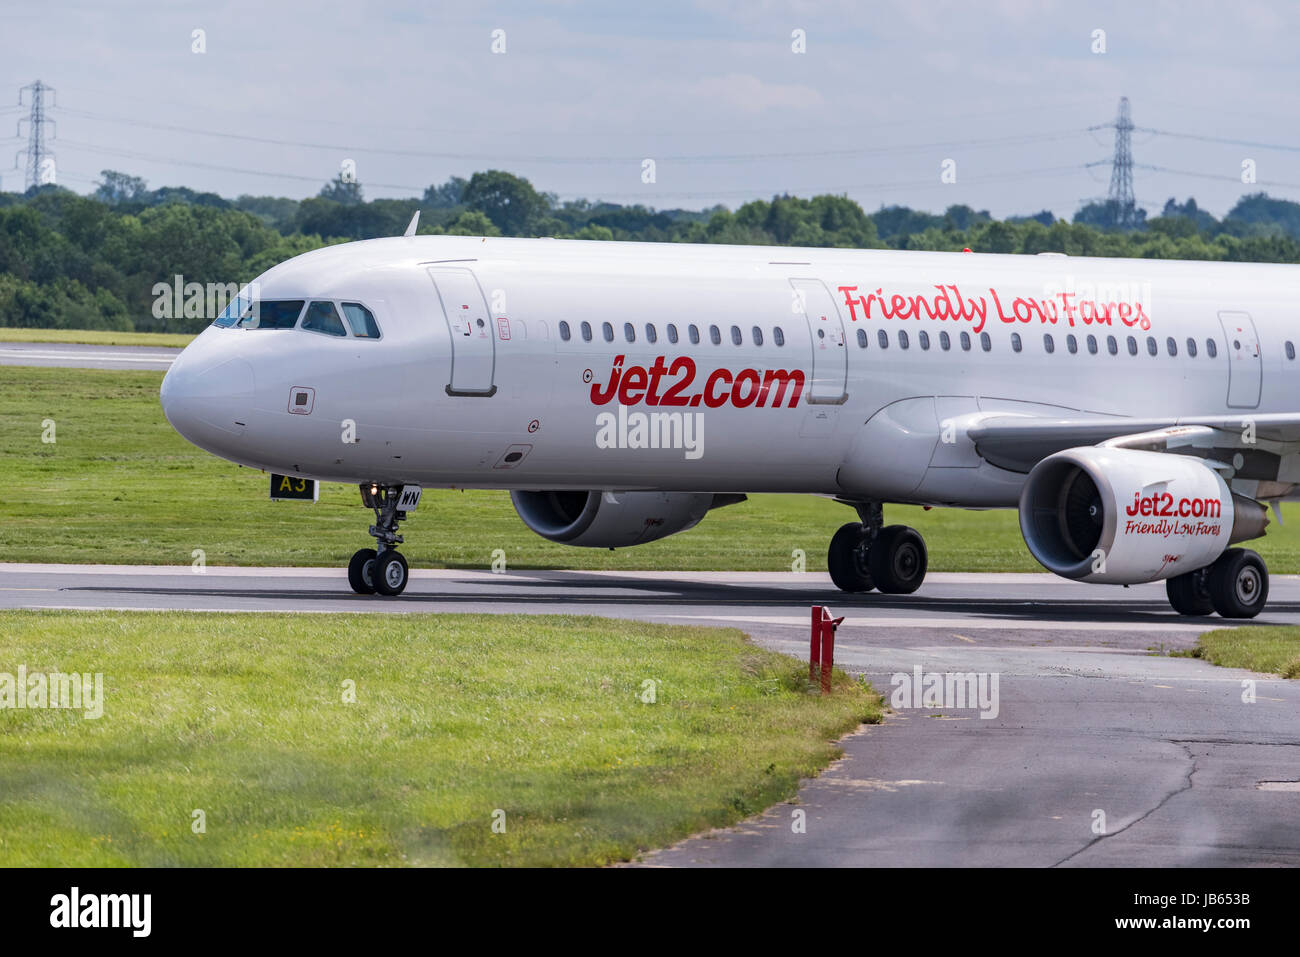 Aircraft Manchester airport Jet2 Airbus A320 - Stock Image